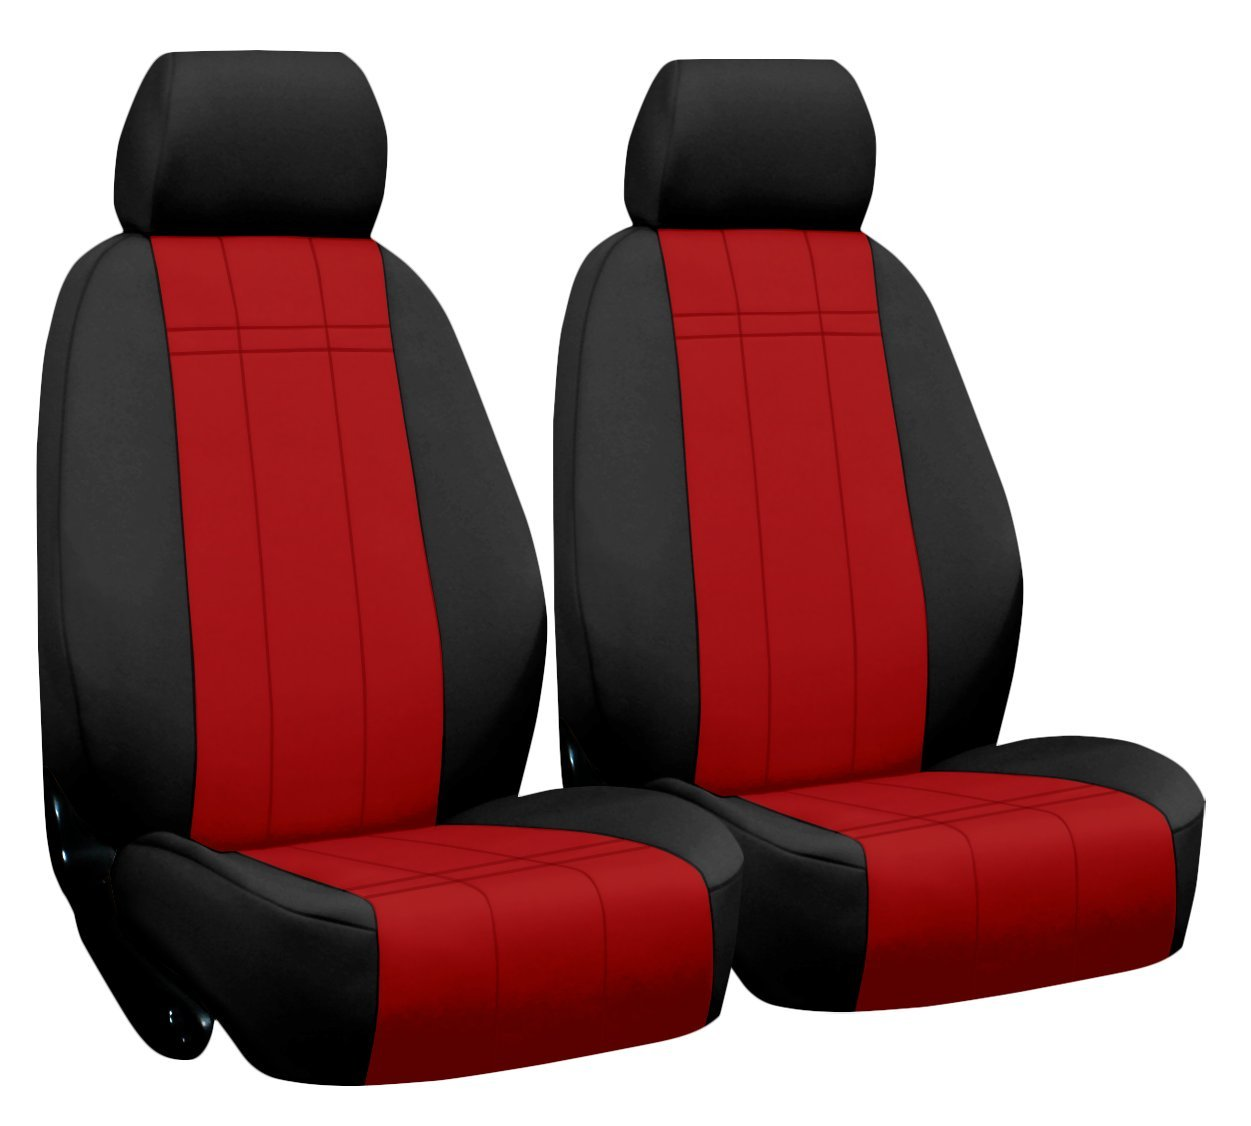 adcd9a97370 Amazon.com  Front Seats  ShearComfort Custom Neoprene-Style Seat Covers for  Toyota Tacoma (2016-2019) in Black w Red for Buckets w Adjustable  Headrests  ...